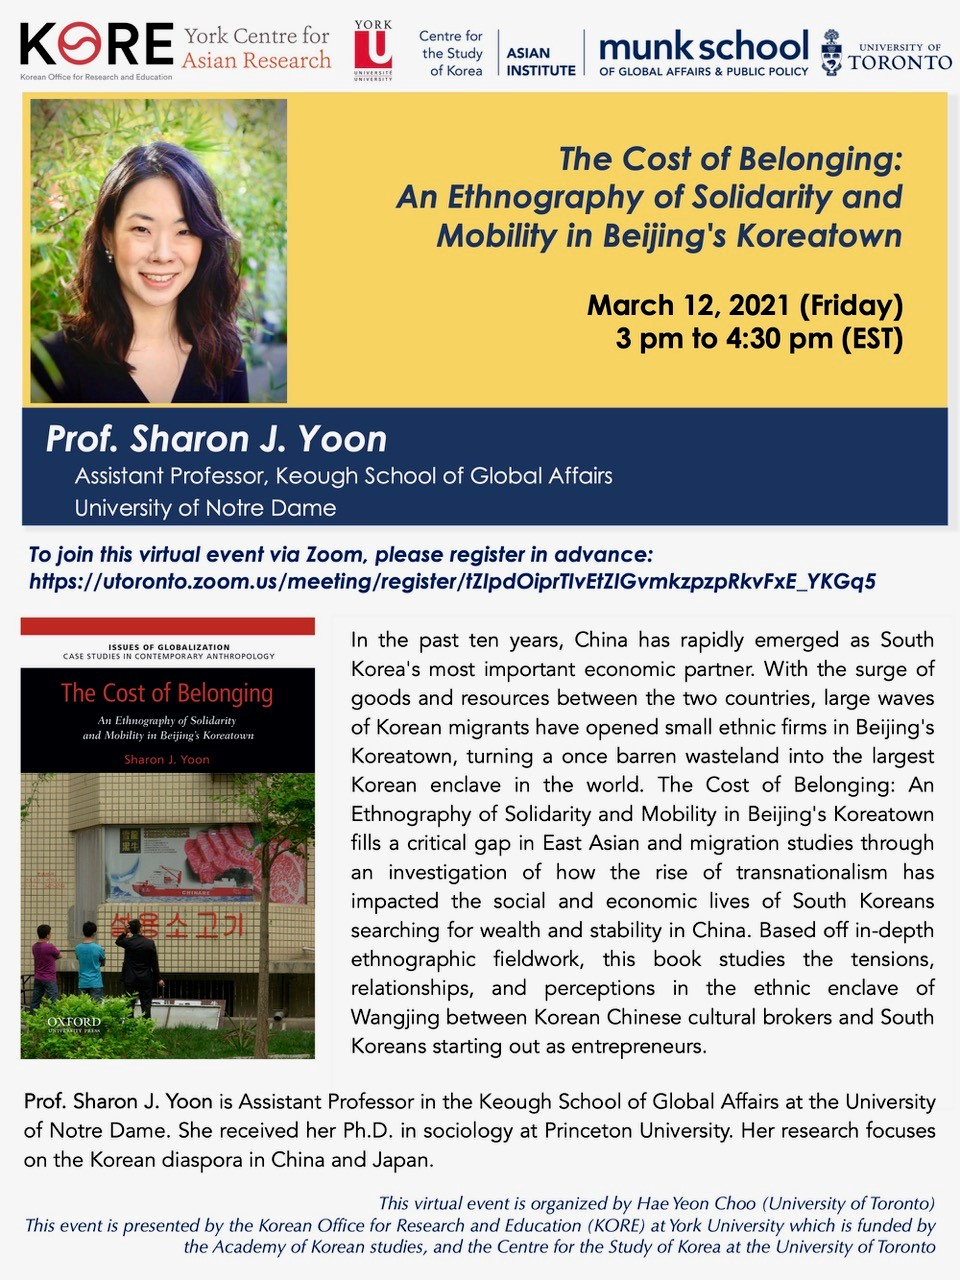 The Cost of Belonging: An Ethnography of Solidarity and Mobility in Beijing's Koreatown